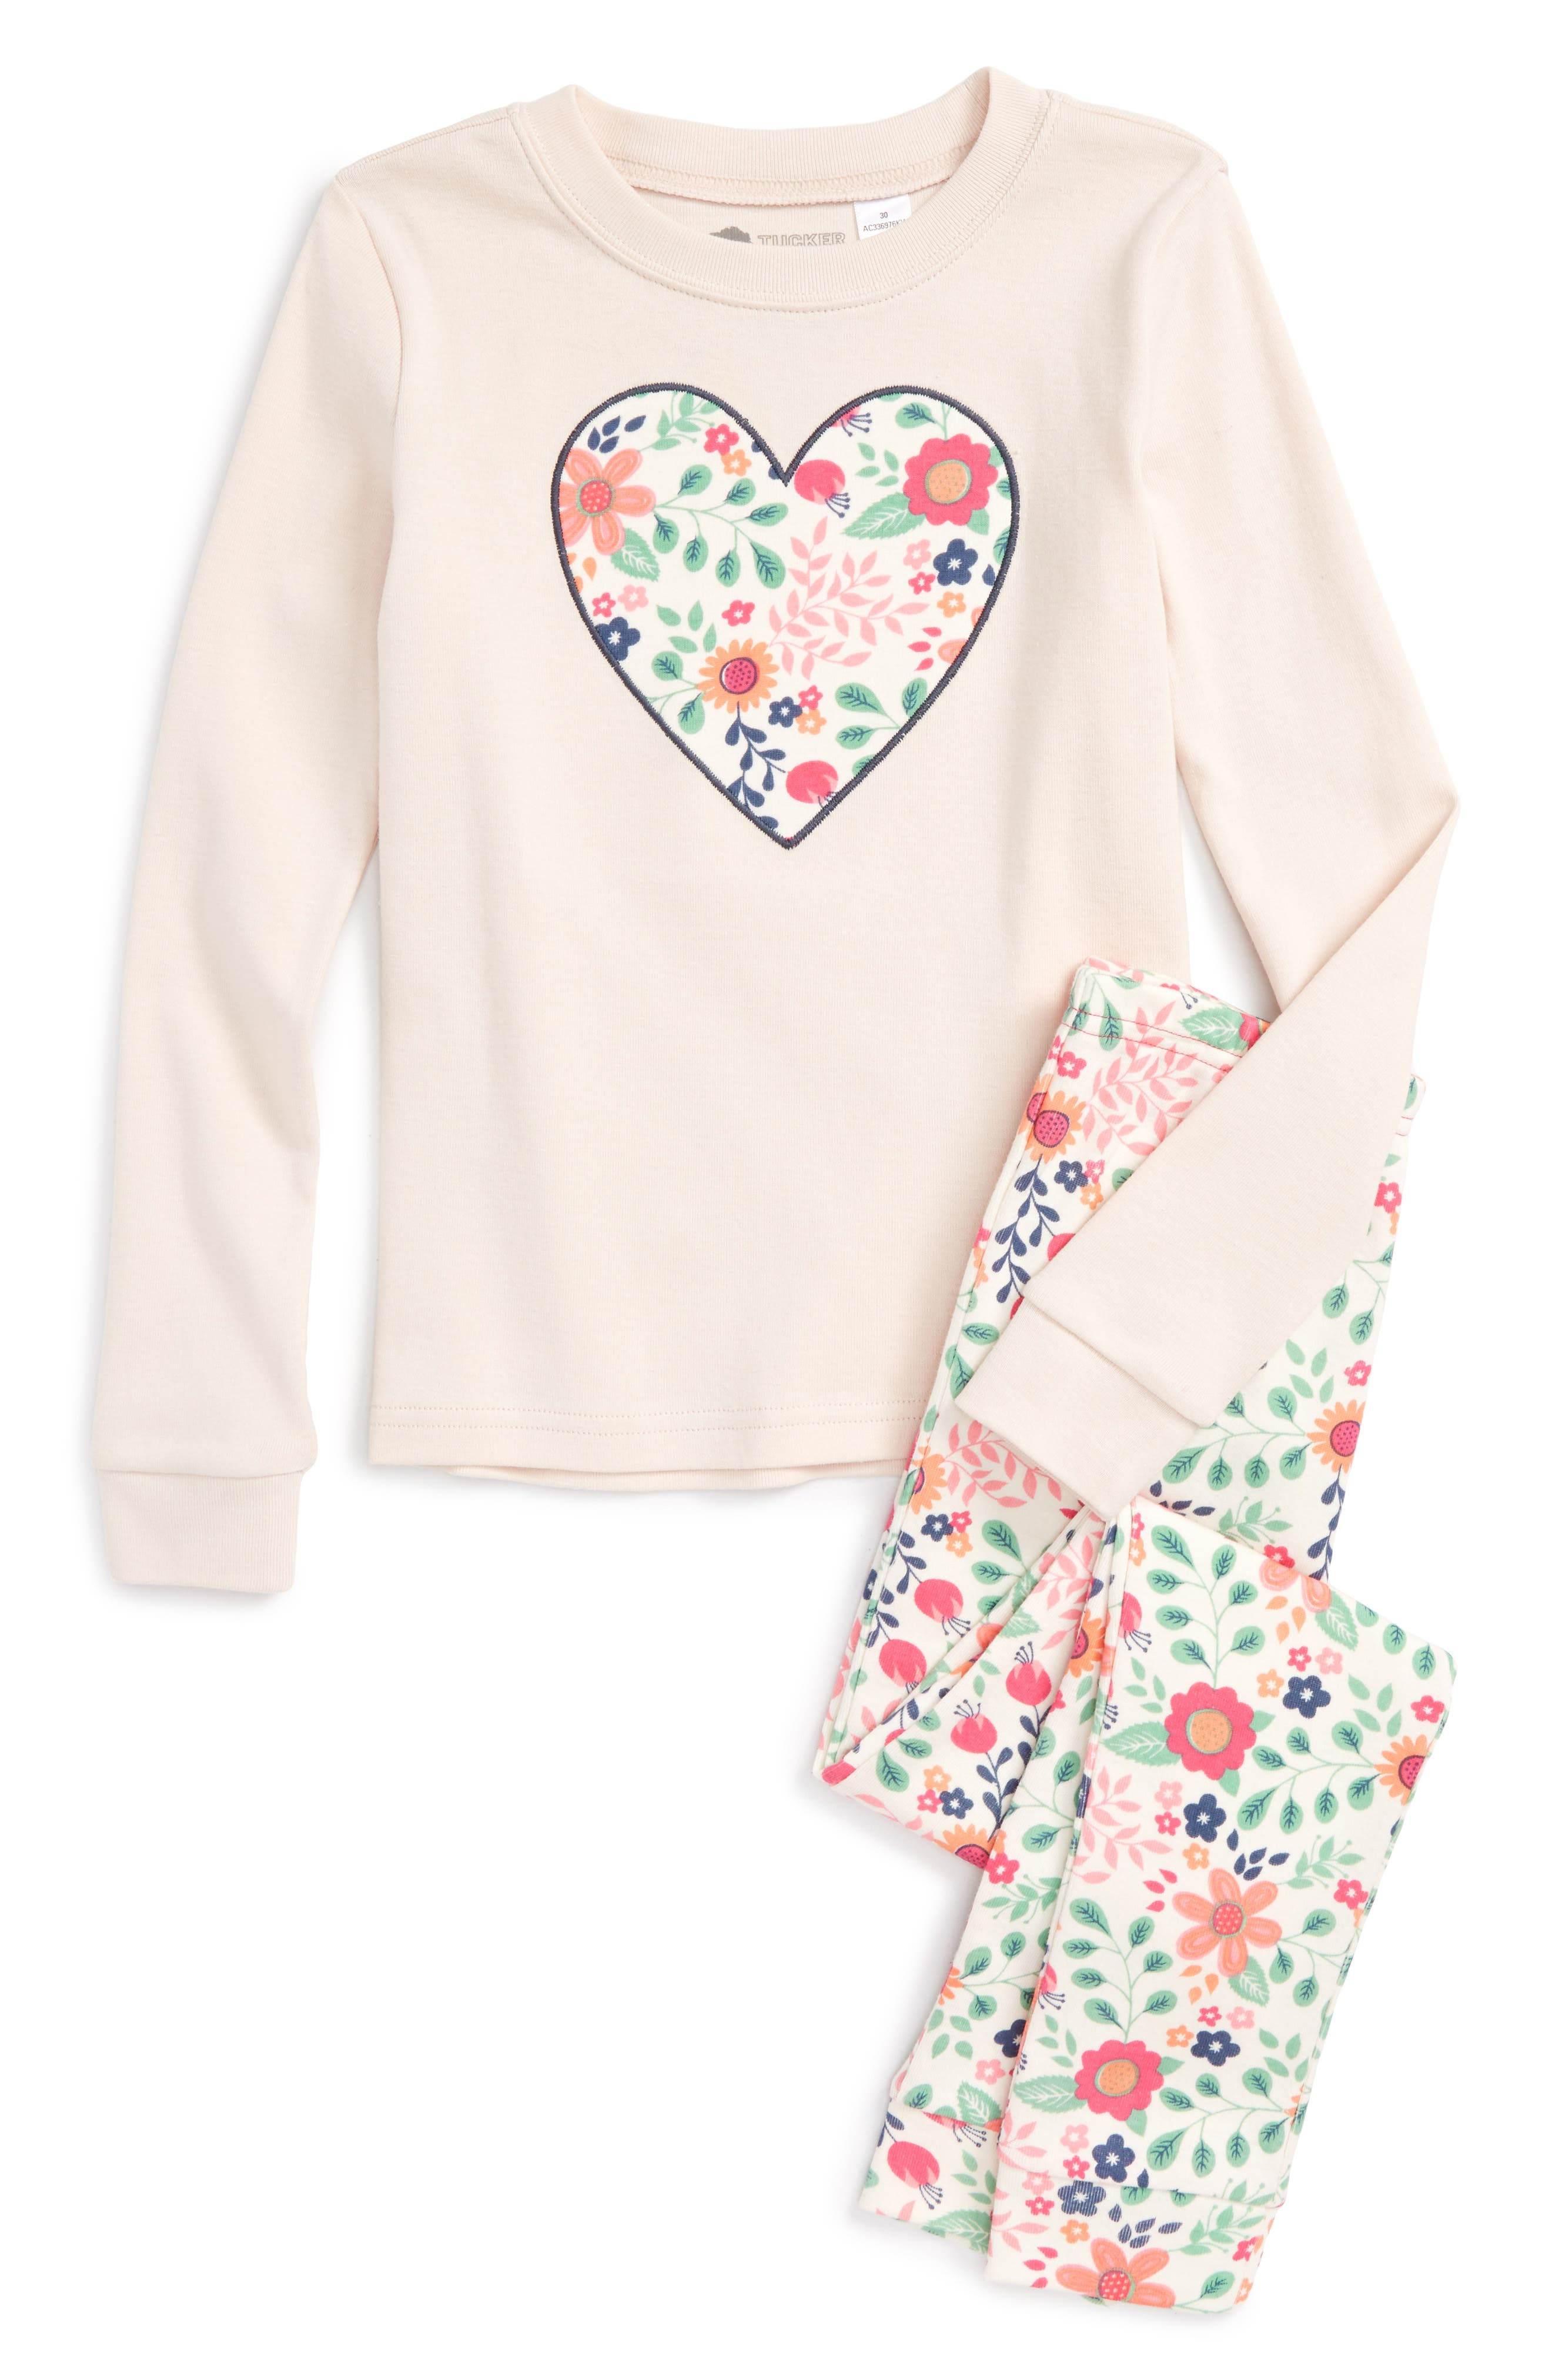 Fitted Two-Piece Pajamas,                             Main thumbnail 1, color,                             Pink Peony Bud Floral Heart